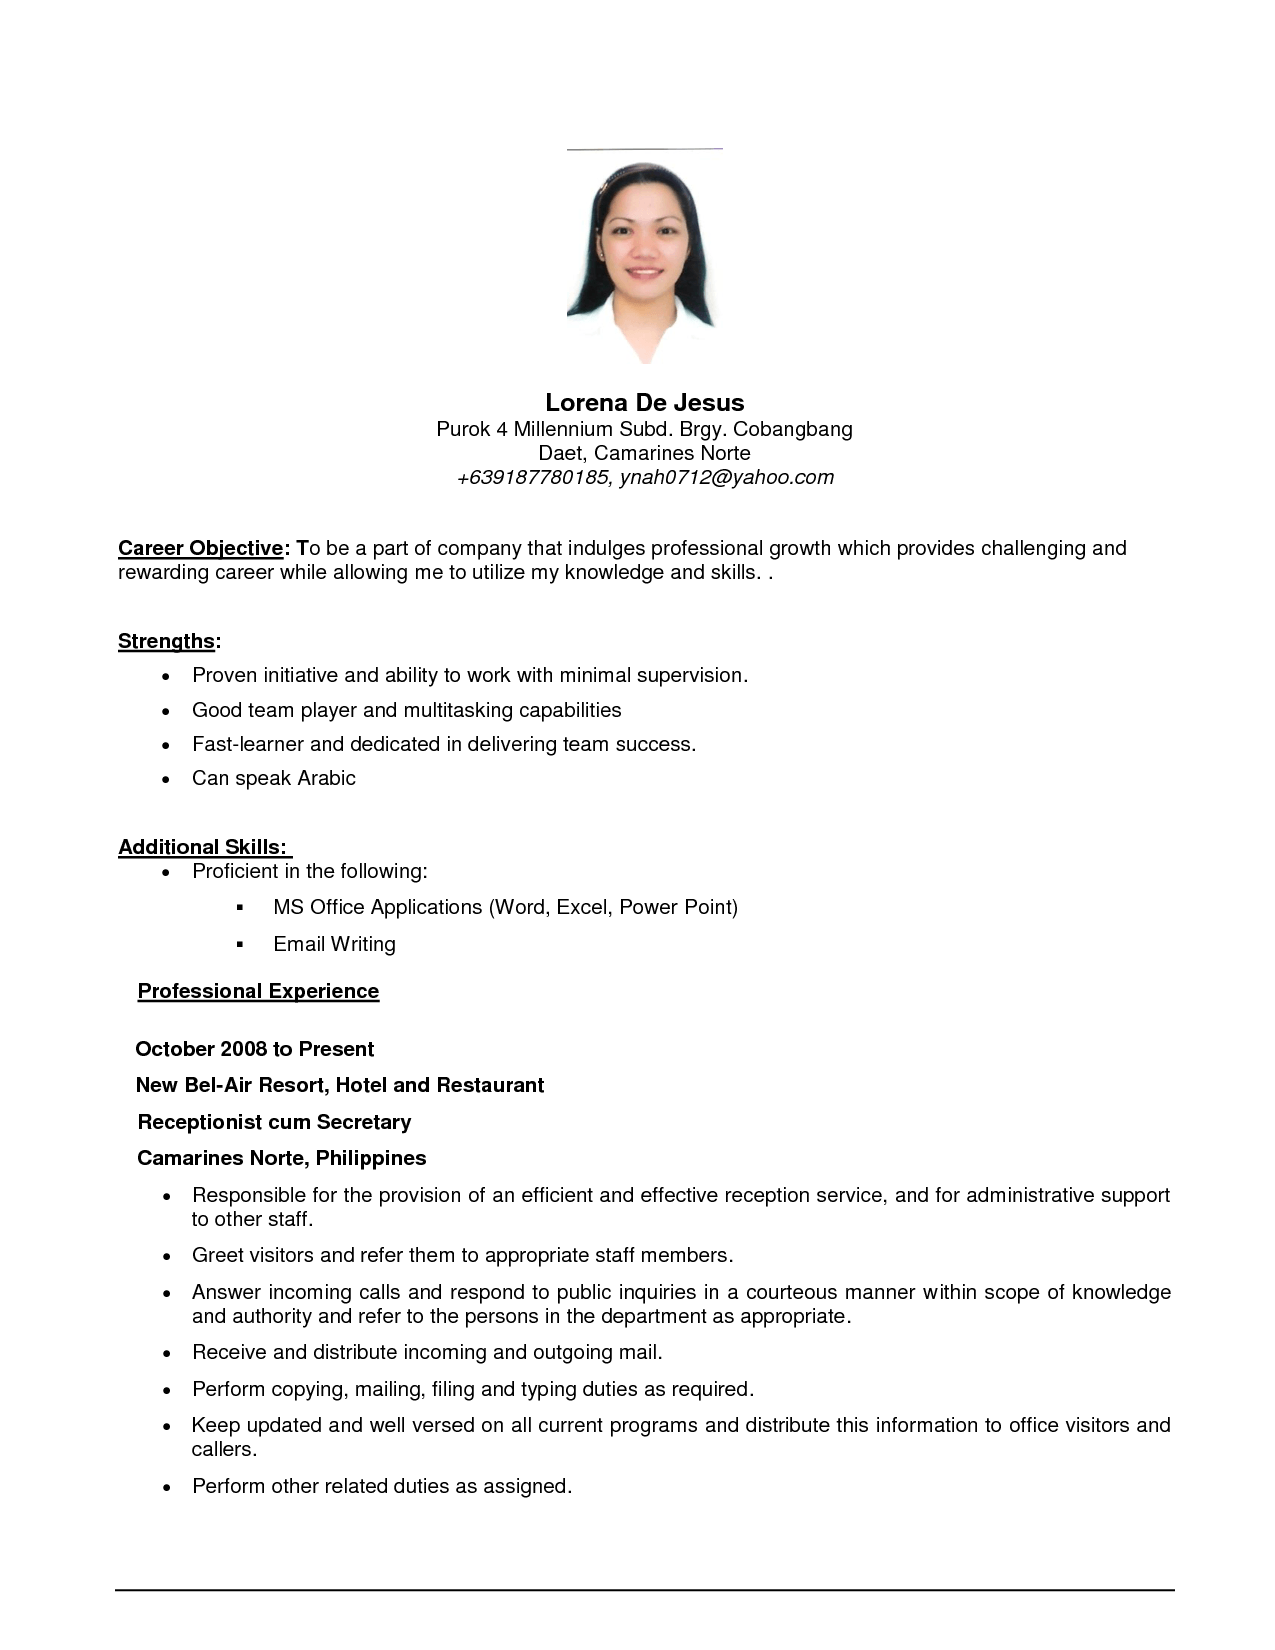 Career Objective Statement Examples Captivating Resume Examples Job Objective  Pinterest  Resume Examples Create .